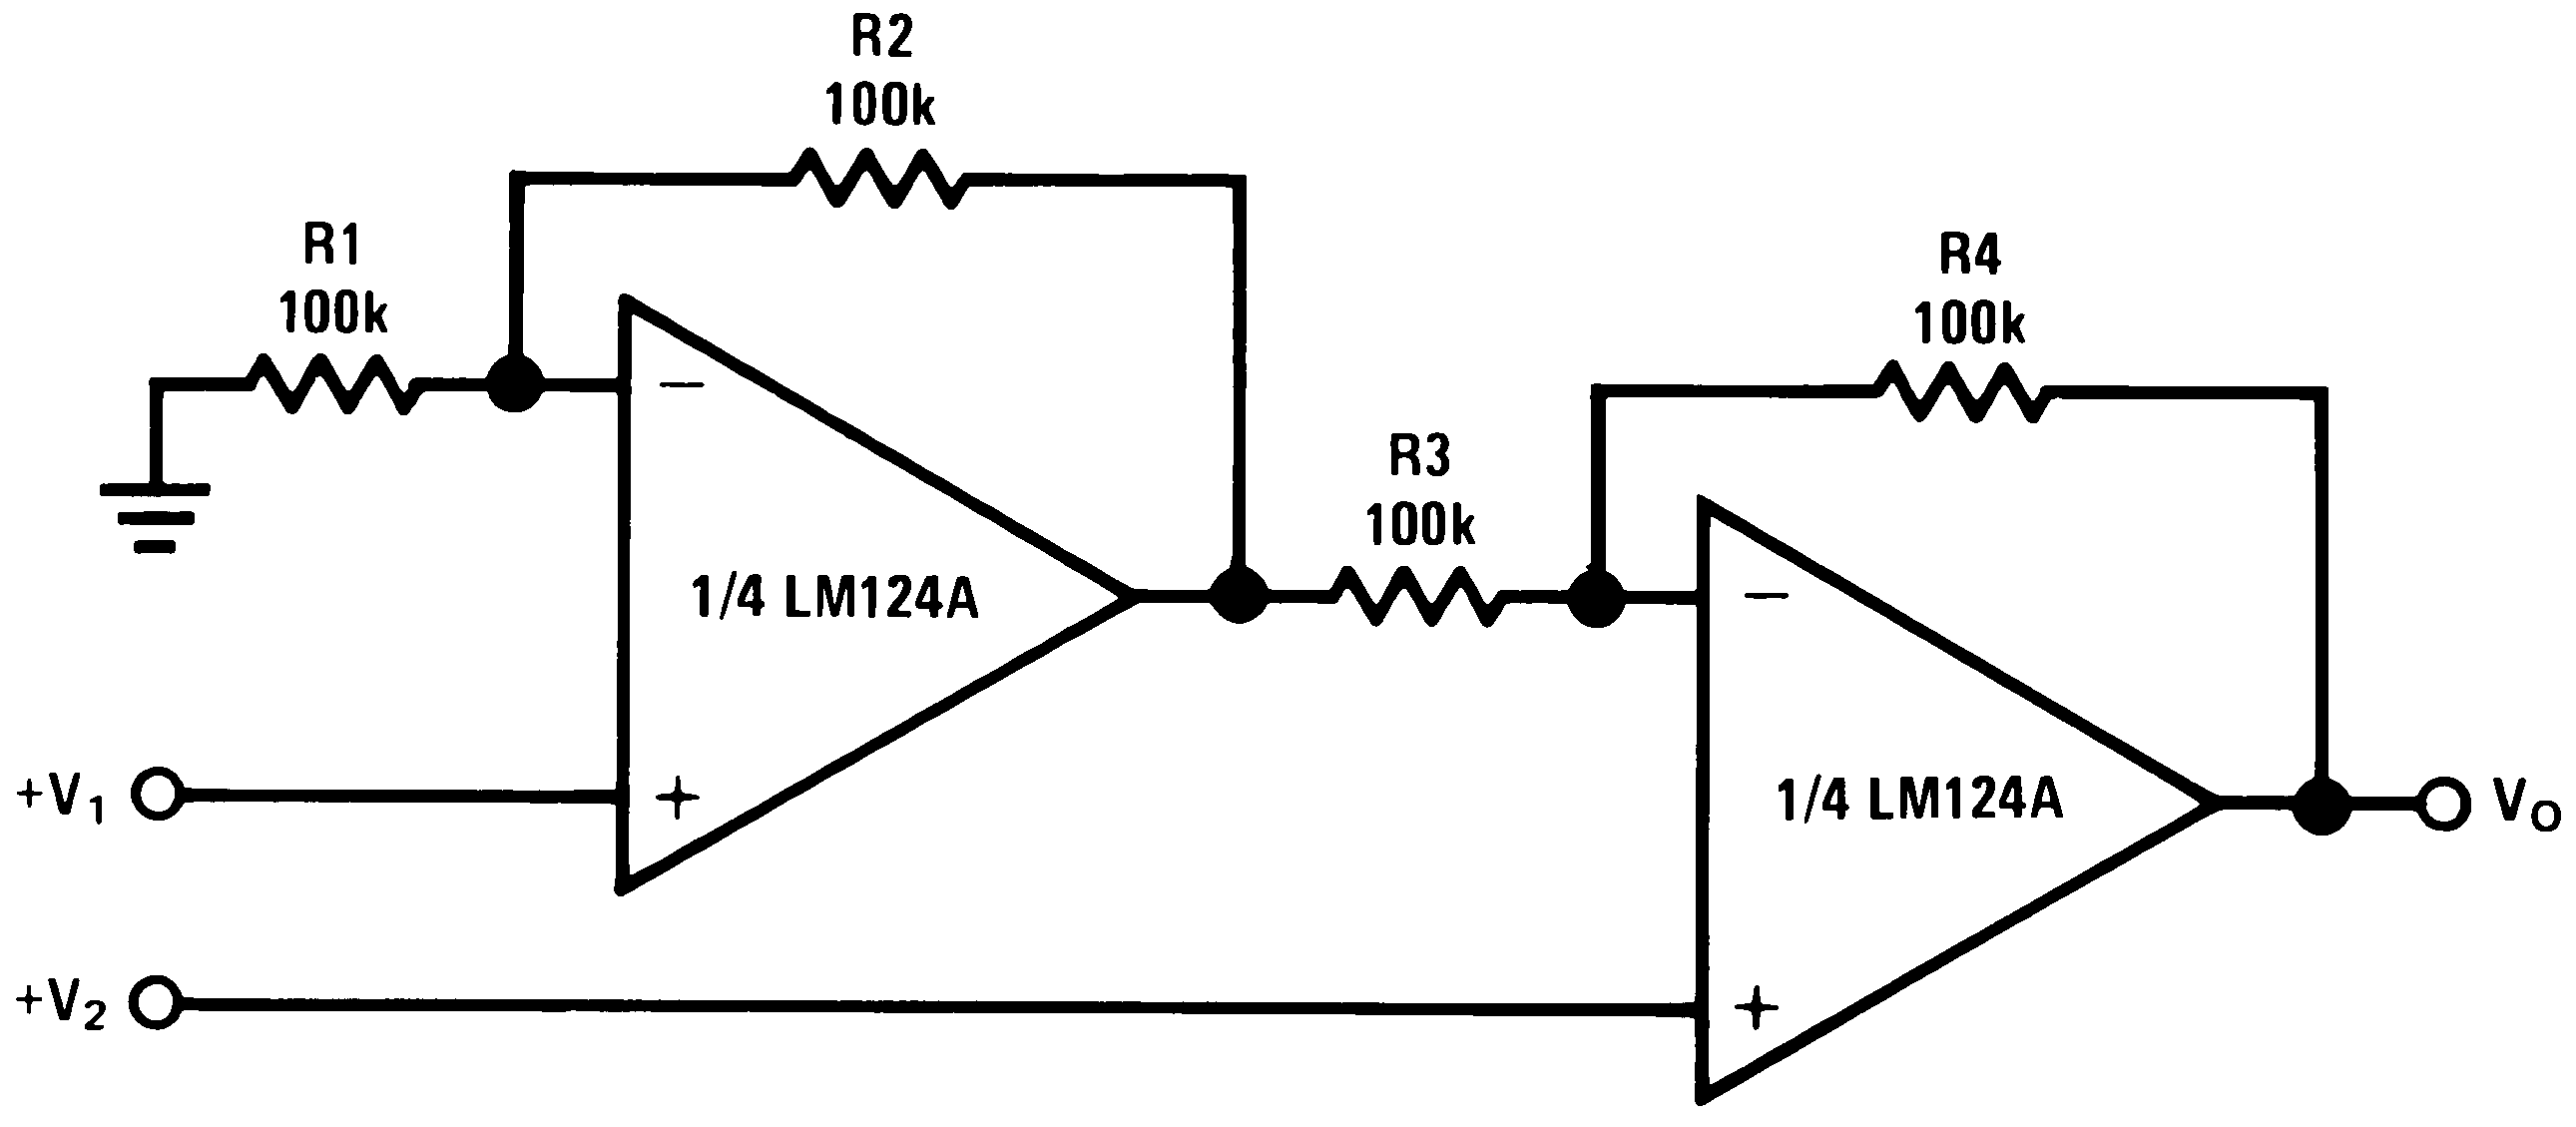 Ecg Circuit Diagram Using Lm324 Schematic Wire Diagrams Lm324n Lm124 N Lm224 Lm2902 929927